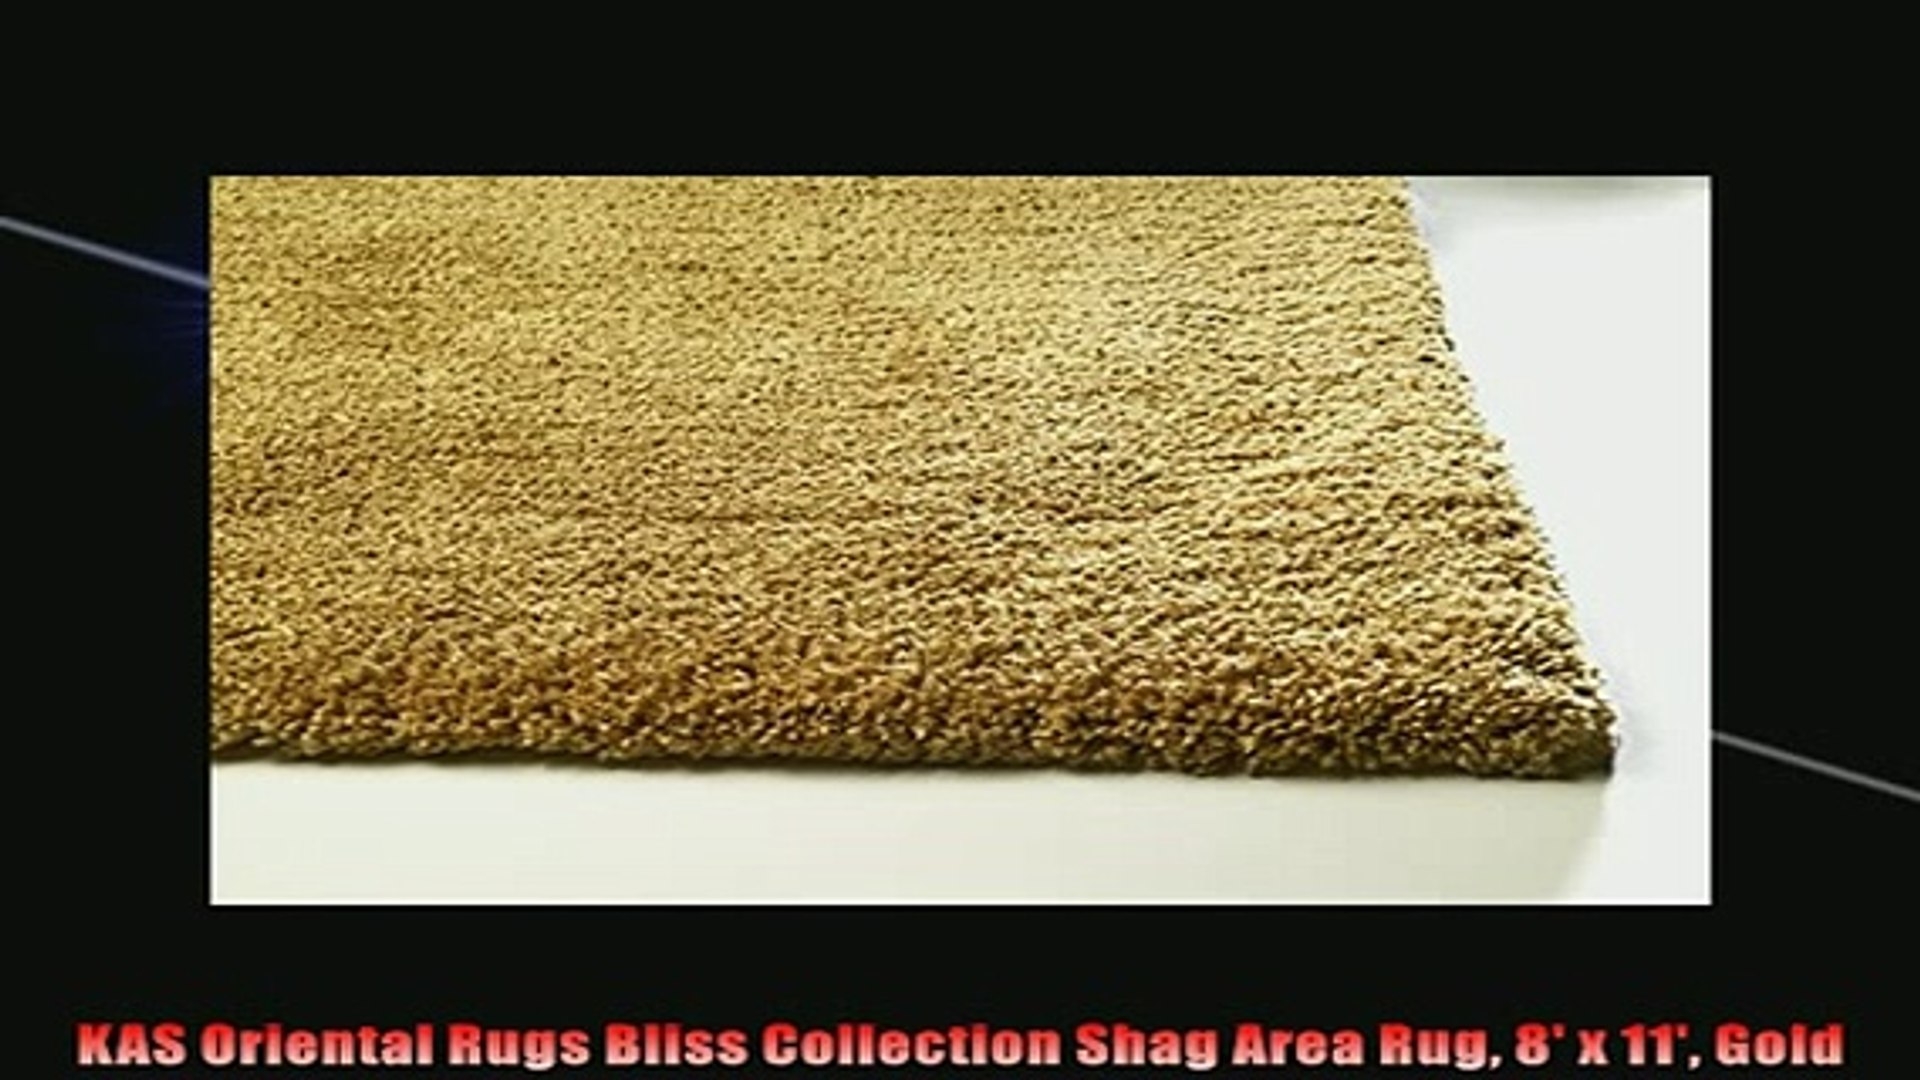 The Best Kas Oriental Rugs Bliss Collection Shag Area Rug 8 X 11 Gold